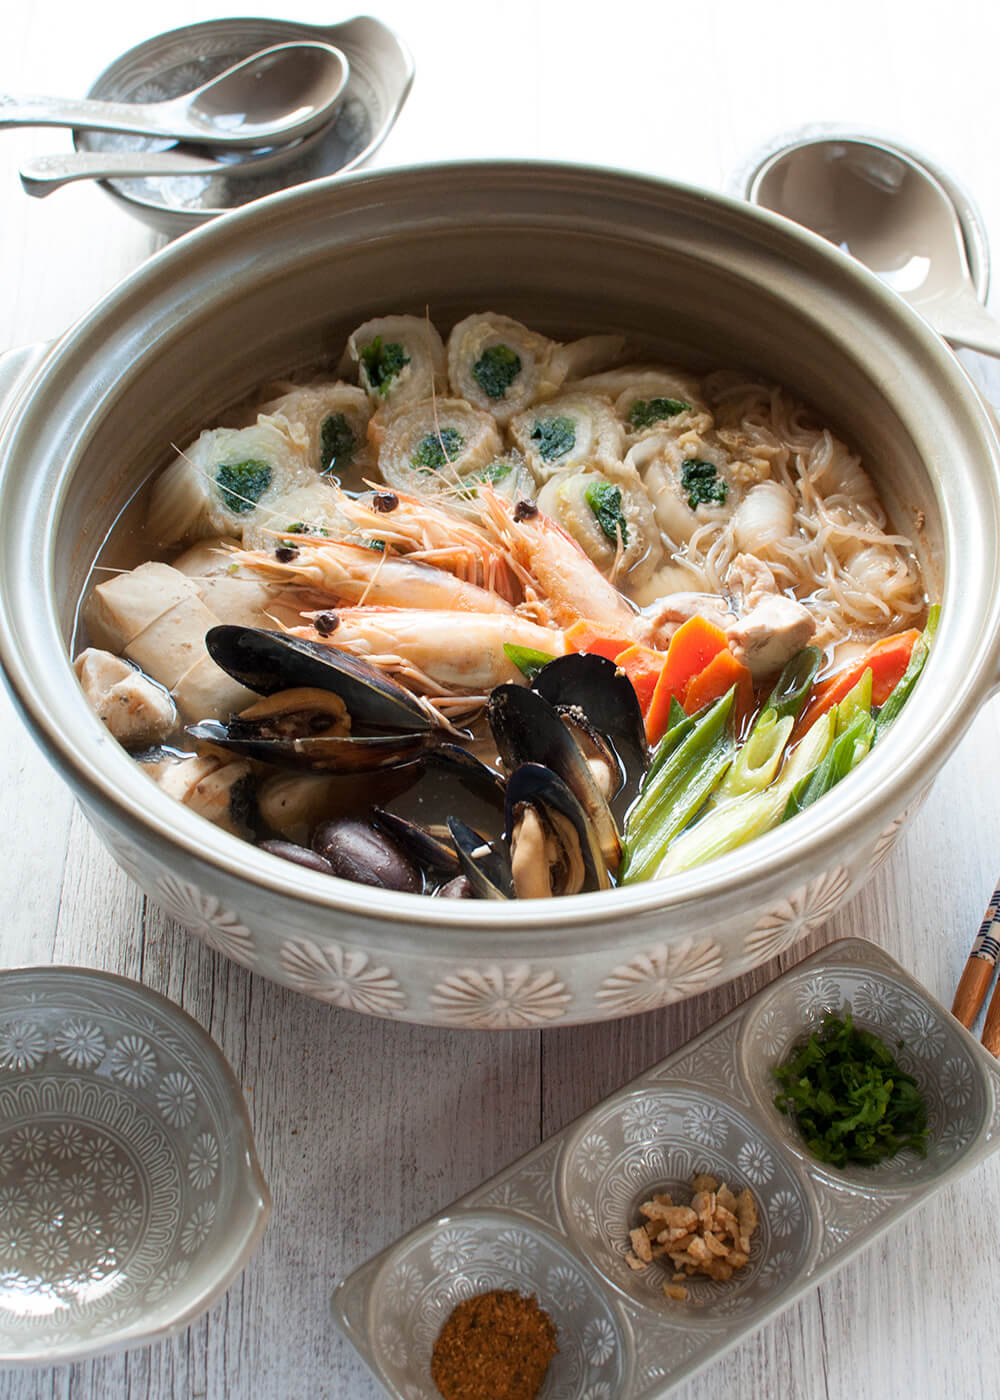 Yosenabe (寄せ鍋) is a Japanese hot pot packed with seafood, chicken and vegetables. http://japan.recipetineats.com